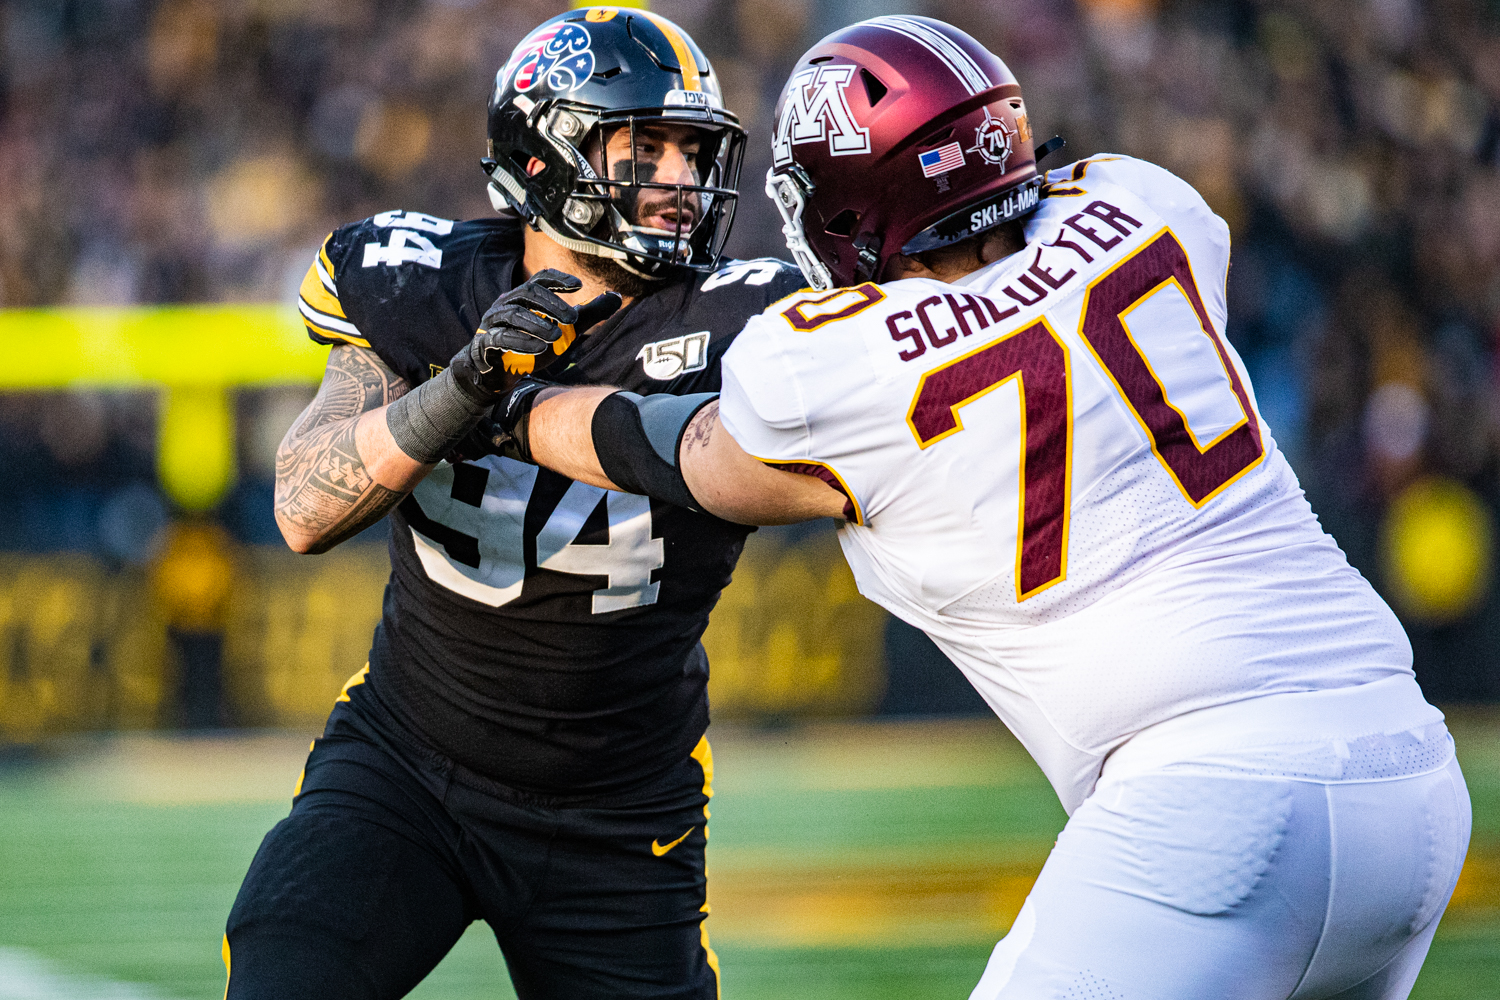 Iowa defensive end AJ Epenesa rushes the passer during a football game between Iowa and Minnesota at Kinnick Stadium on Saturday, Nov. 16, 2019. Epenesa finished with 2.5 sacks on the day.